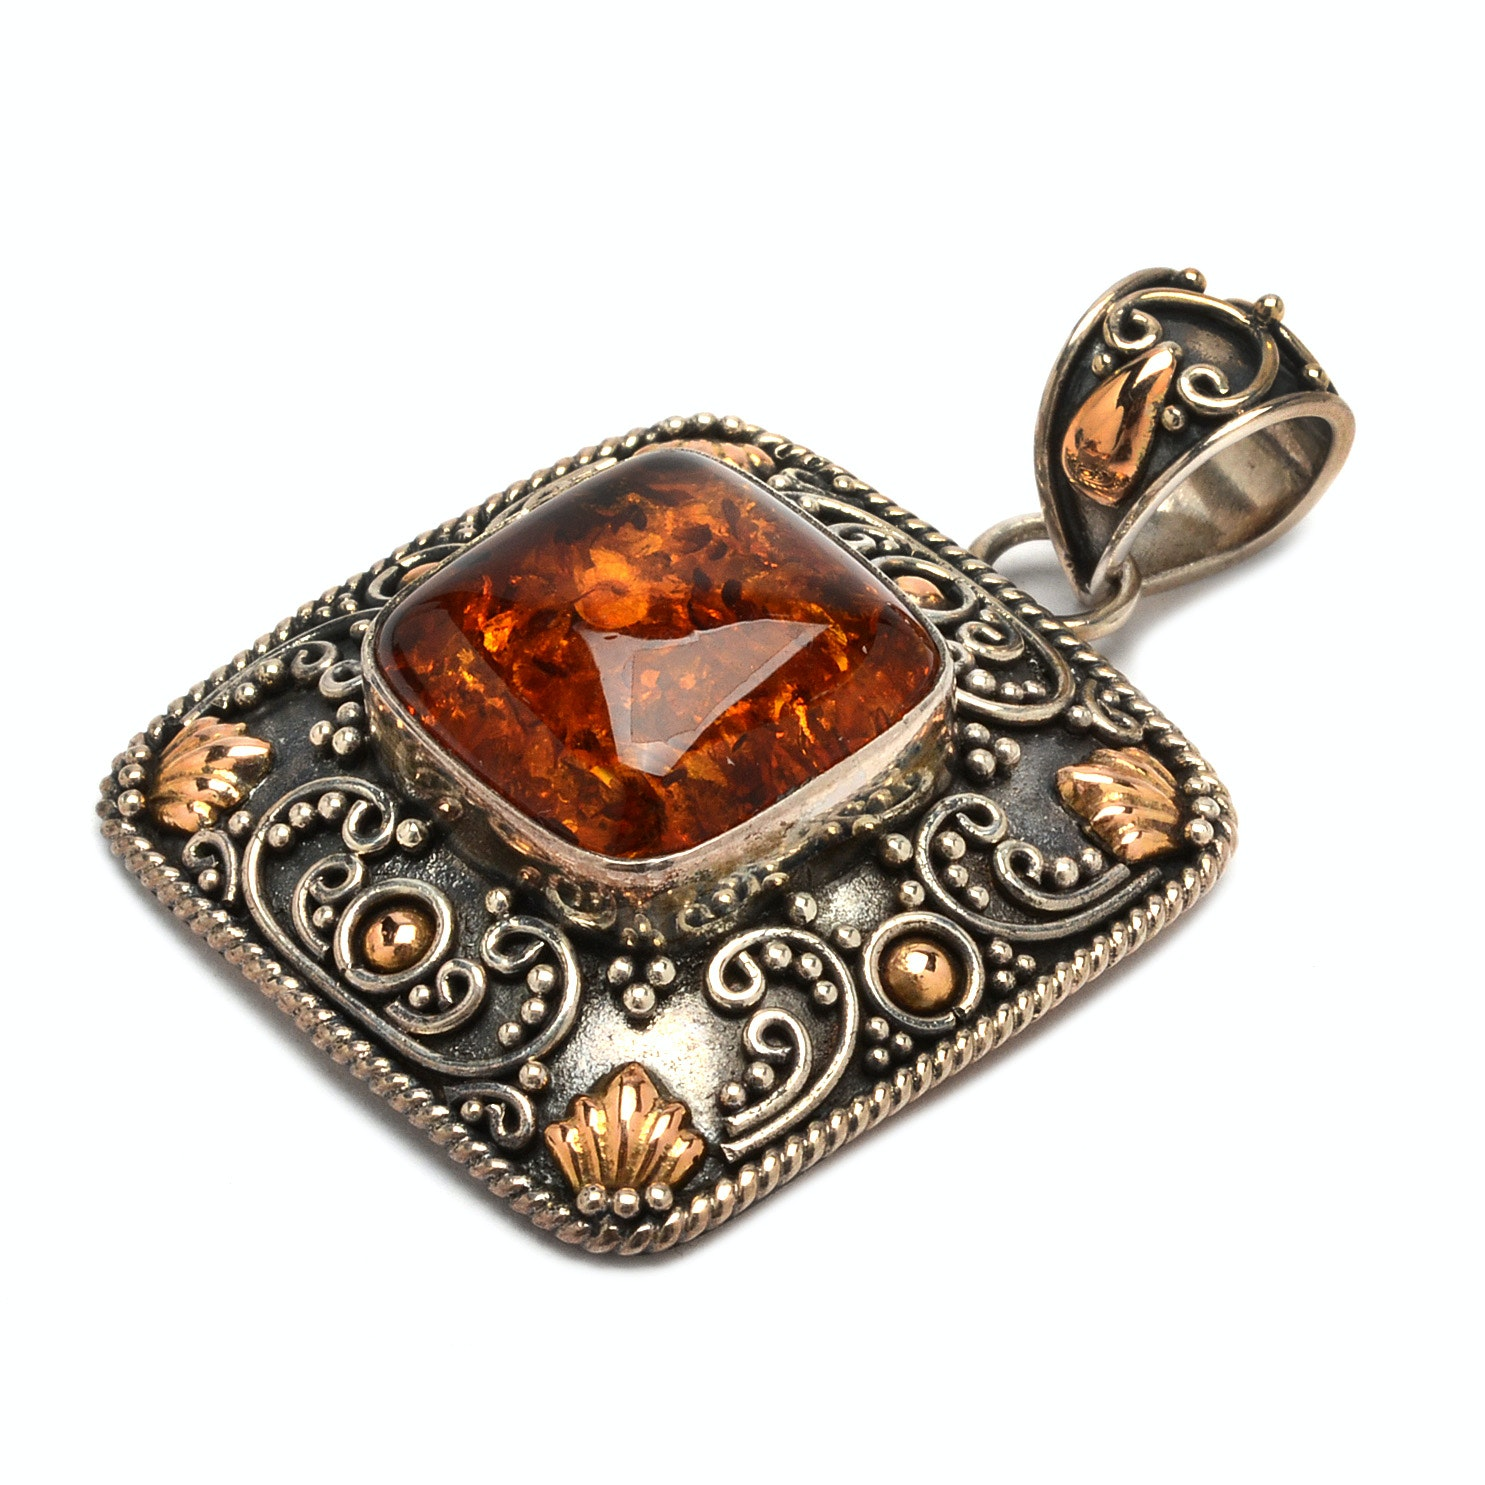 Suarti of Bali Sterling Silver Amber Pendant With 18K Gold Accents